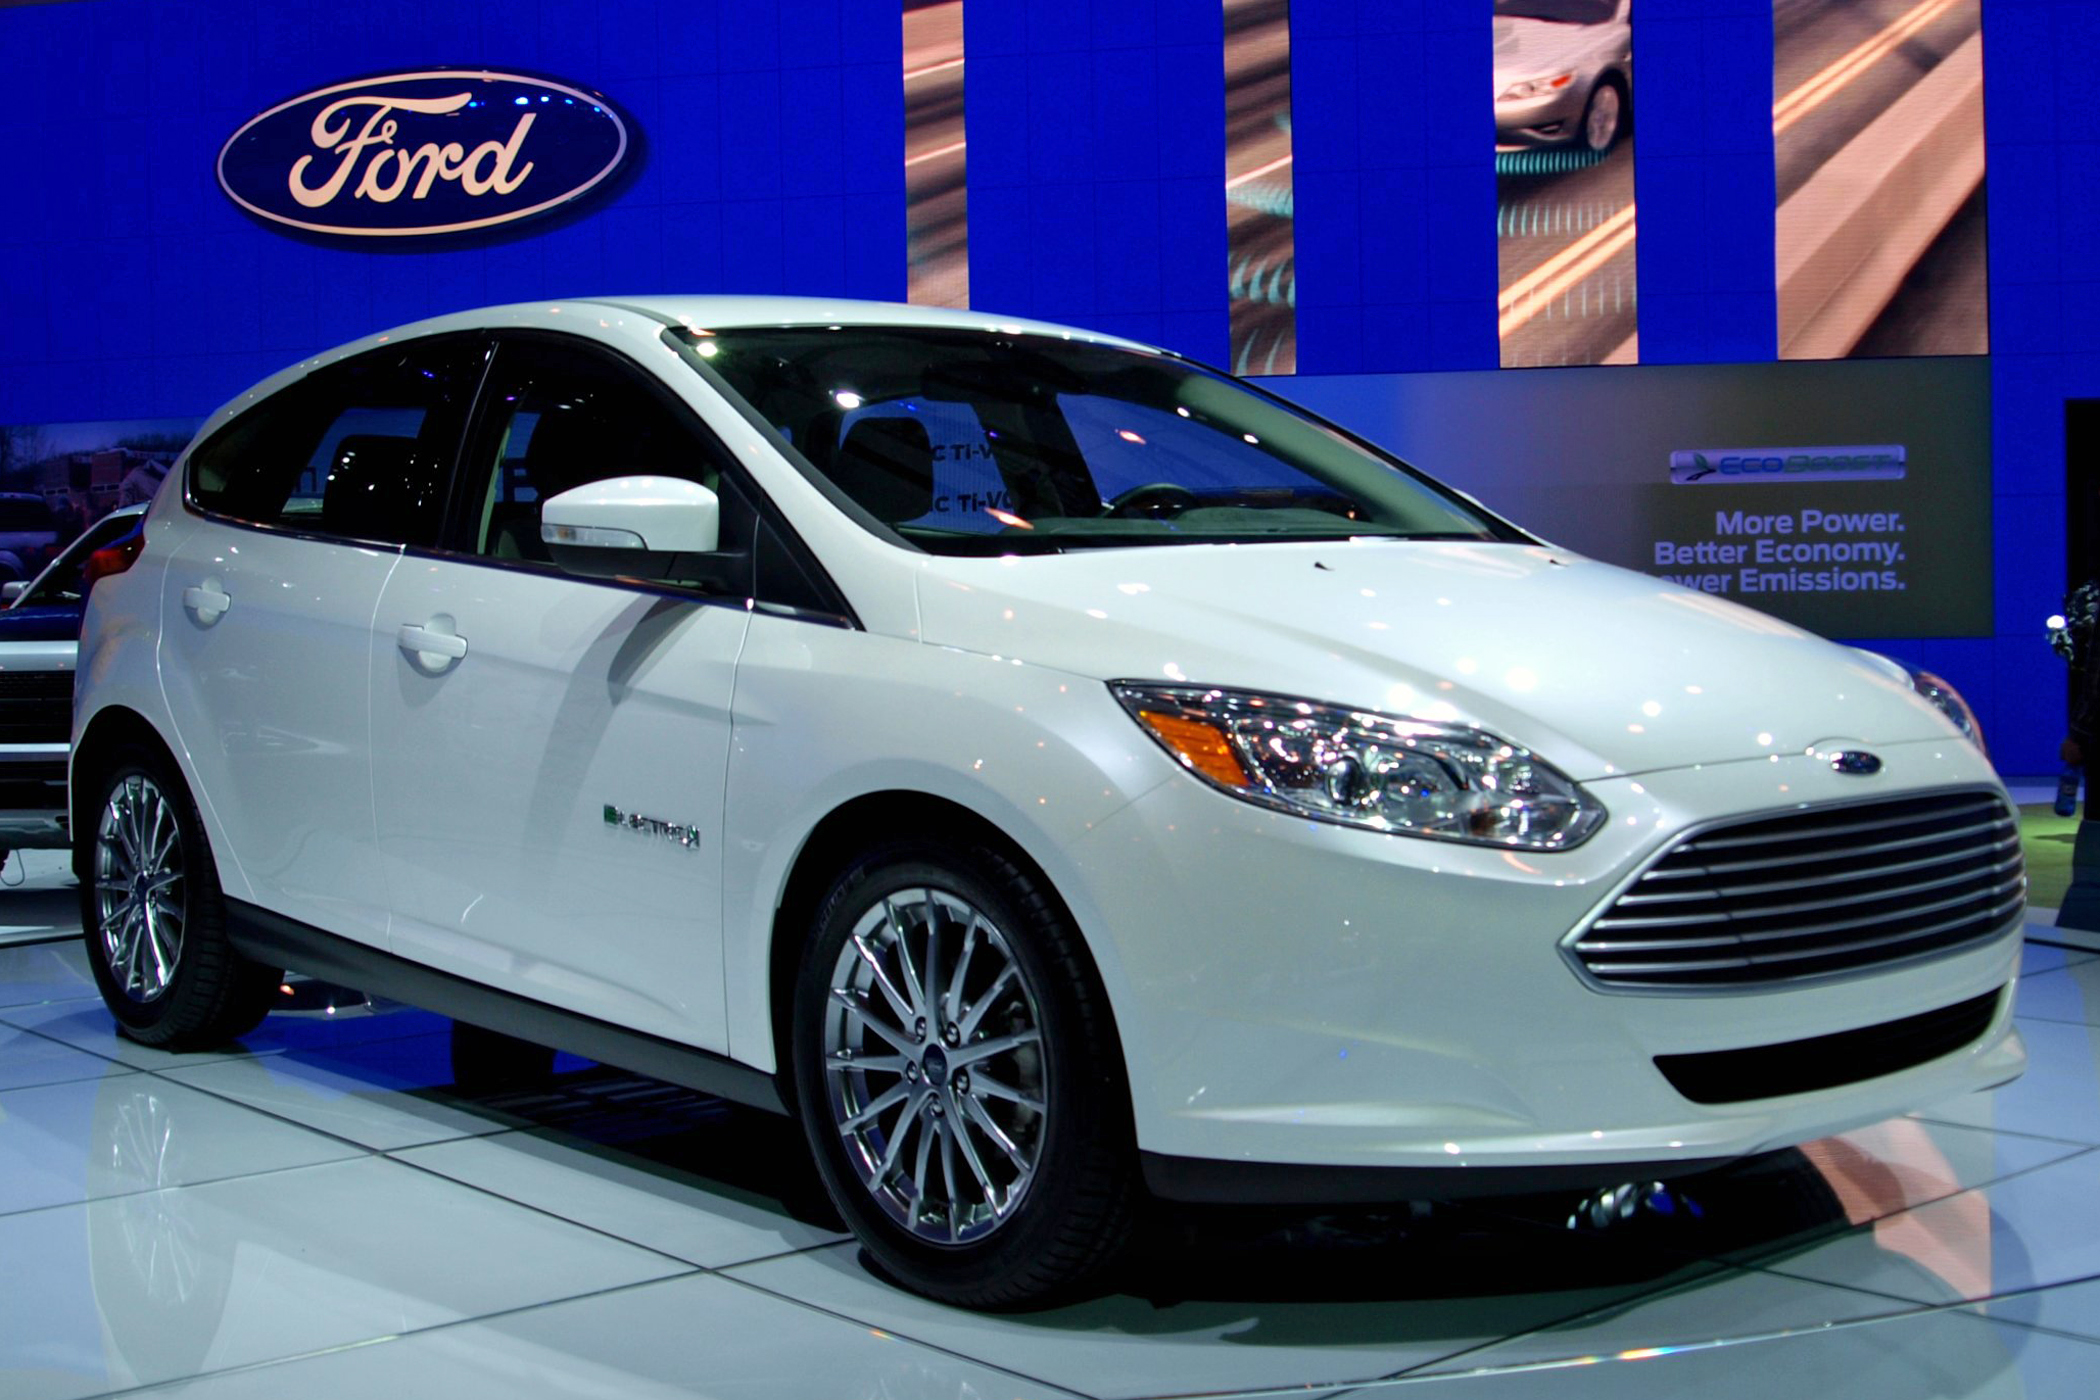 file 2012 ford focus electric vehicle msvg 01 trimmed jpg rh commons wikimedia org